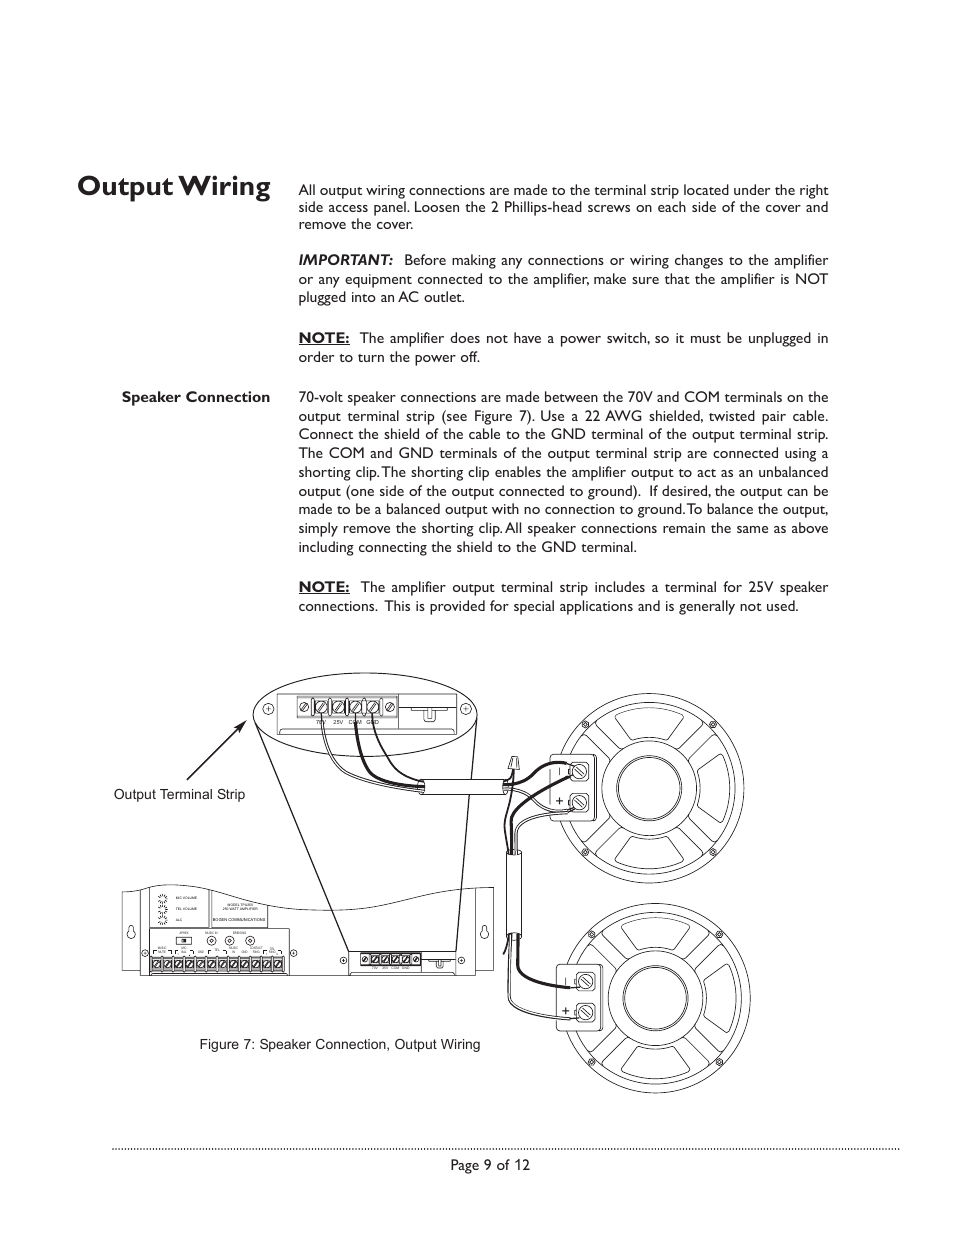 25v Speaker Wiring Diagram Electrical Diagrams Connection Output Bogen Tpu250 User Manual Page 9 12 4 Ohm Guitar